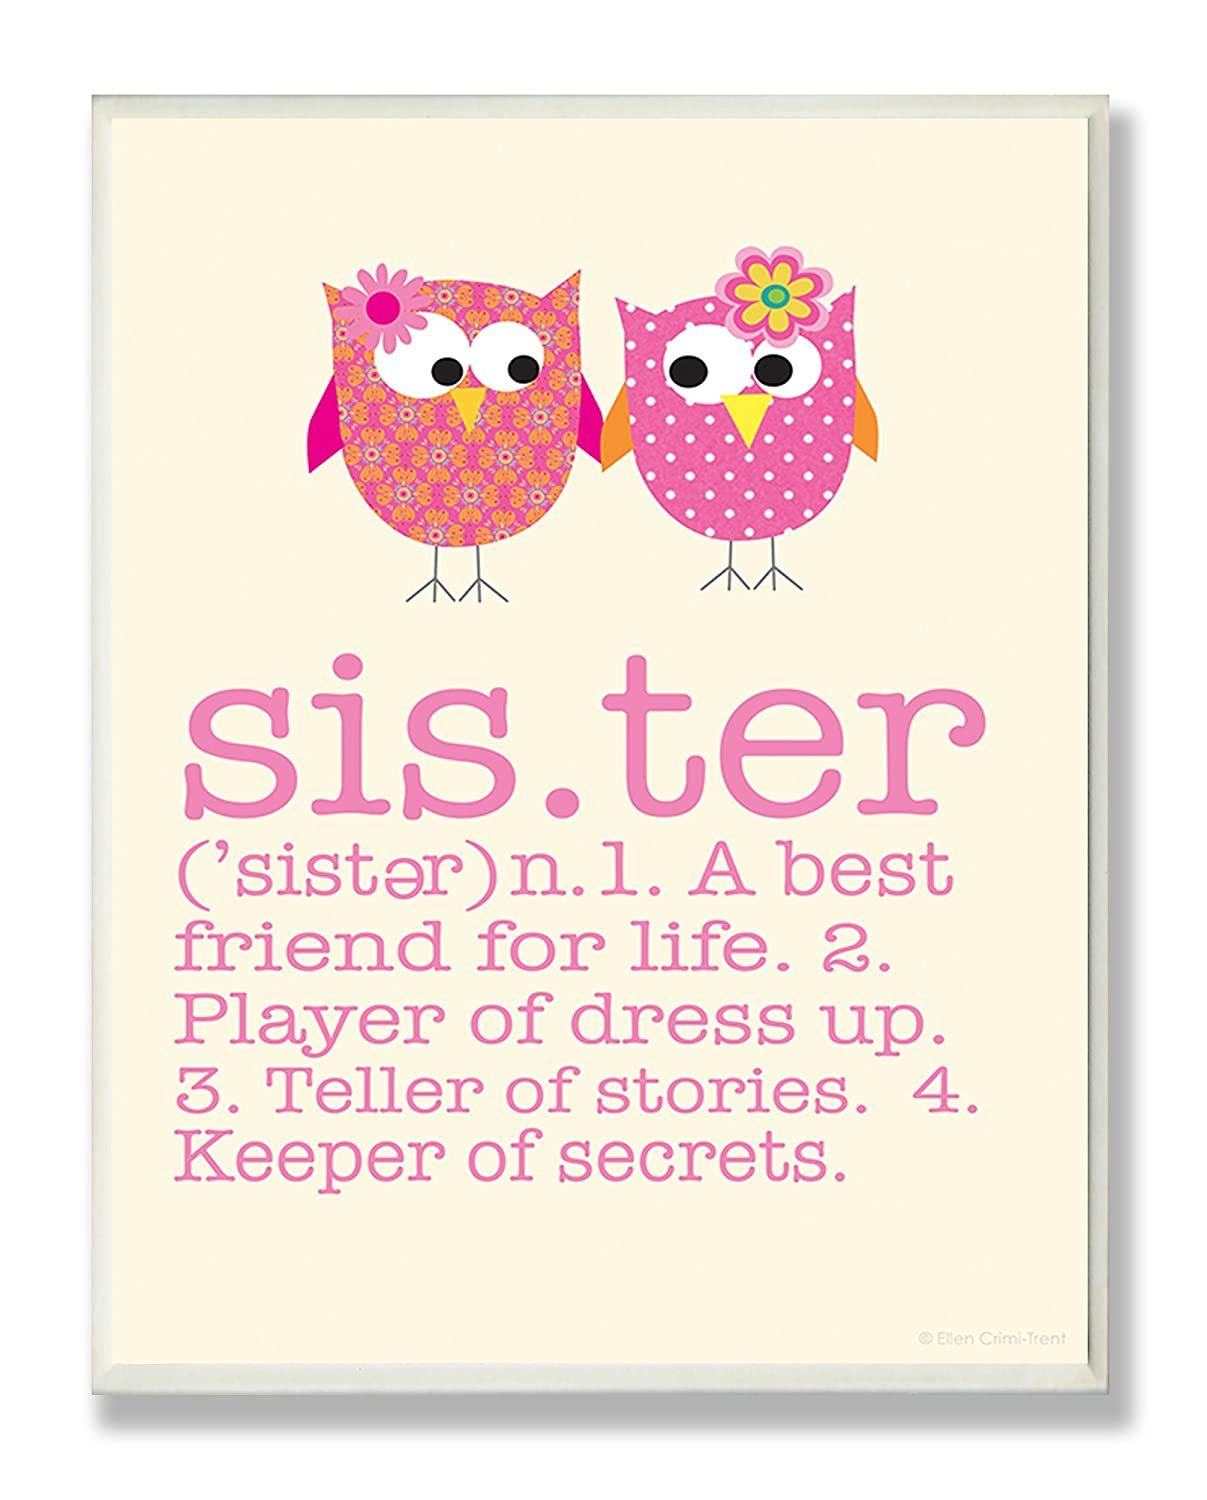 The Kids Room by Stupell Definition Of Sister With Pink Owls Rectangle Wall Plaque, 11 x 0.5 x 15, Proudly Made in USA brp-1633